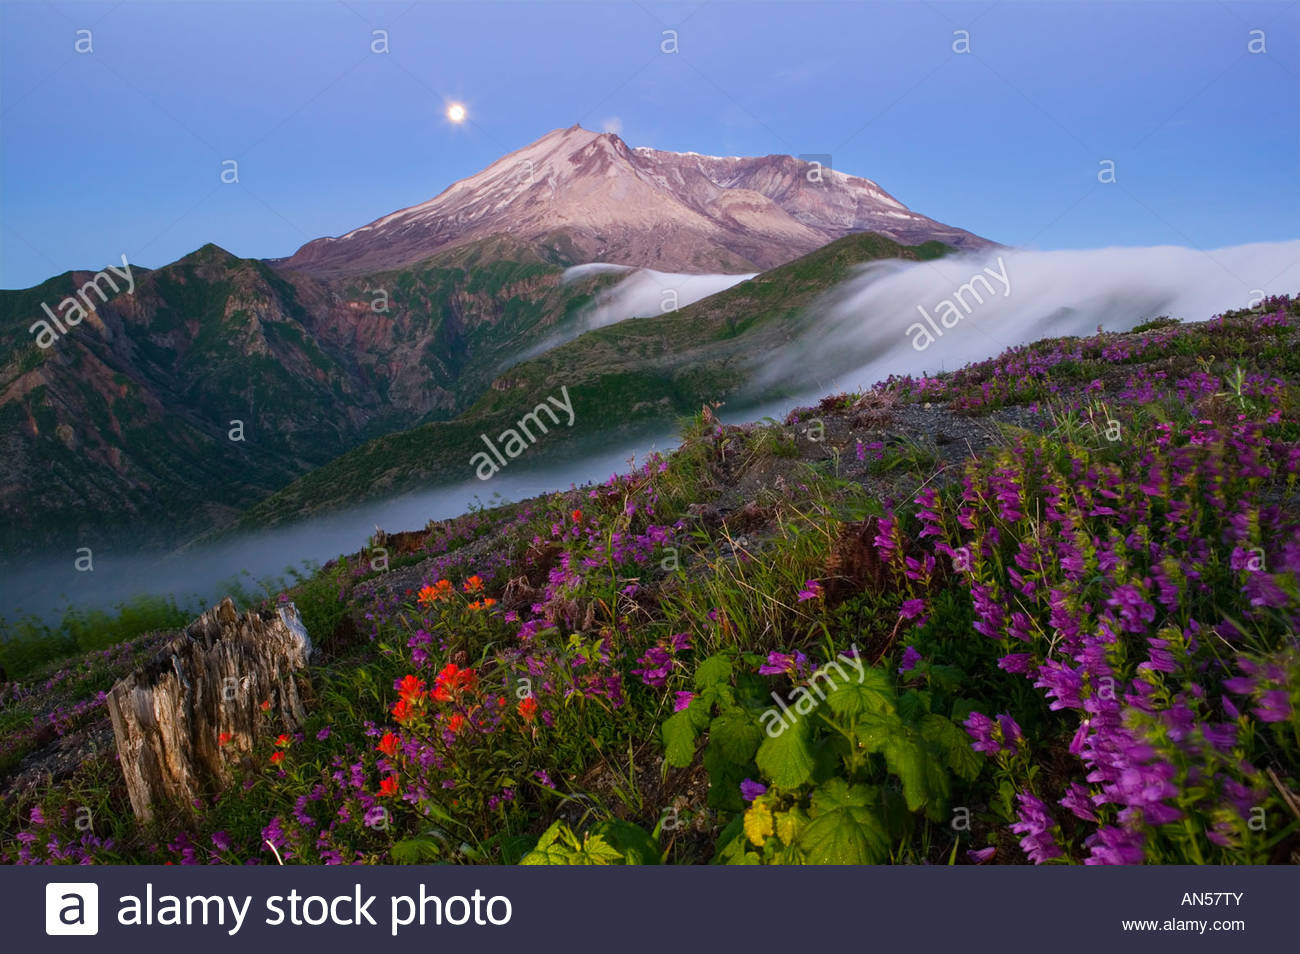 The full moon sets behind Mount St Helens, which is framed by a dramatic fog falls and blooming summer wildflowers. Stock Photo